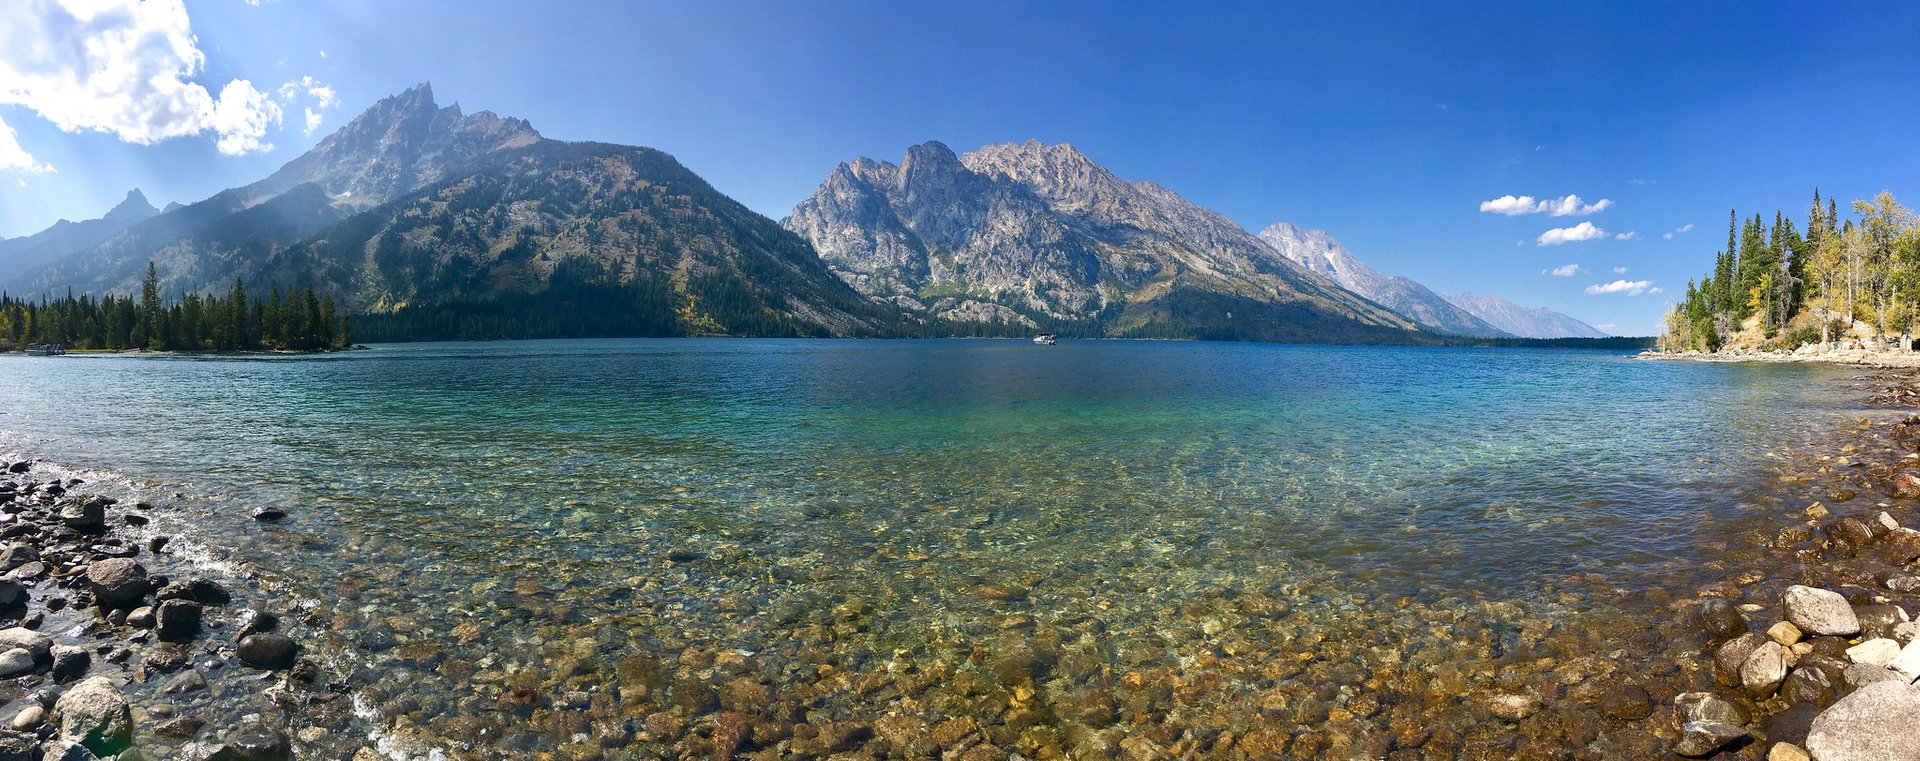 Panorama of Jenny Lake at Grand Teton National Park 2020